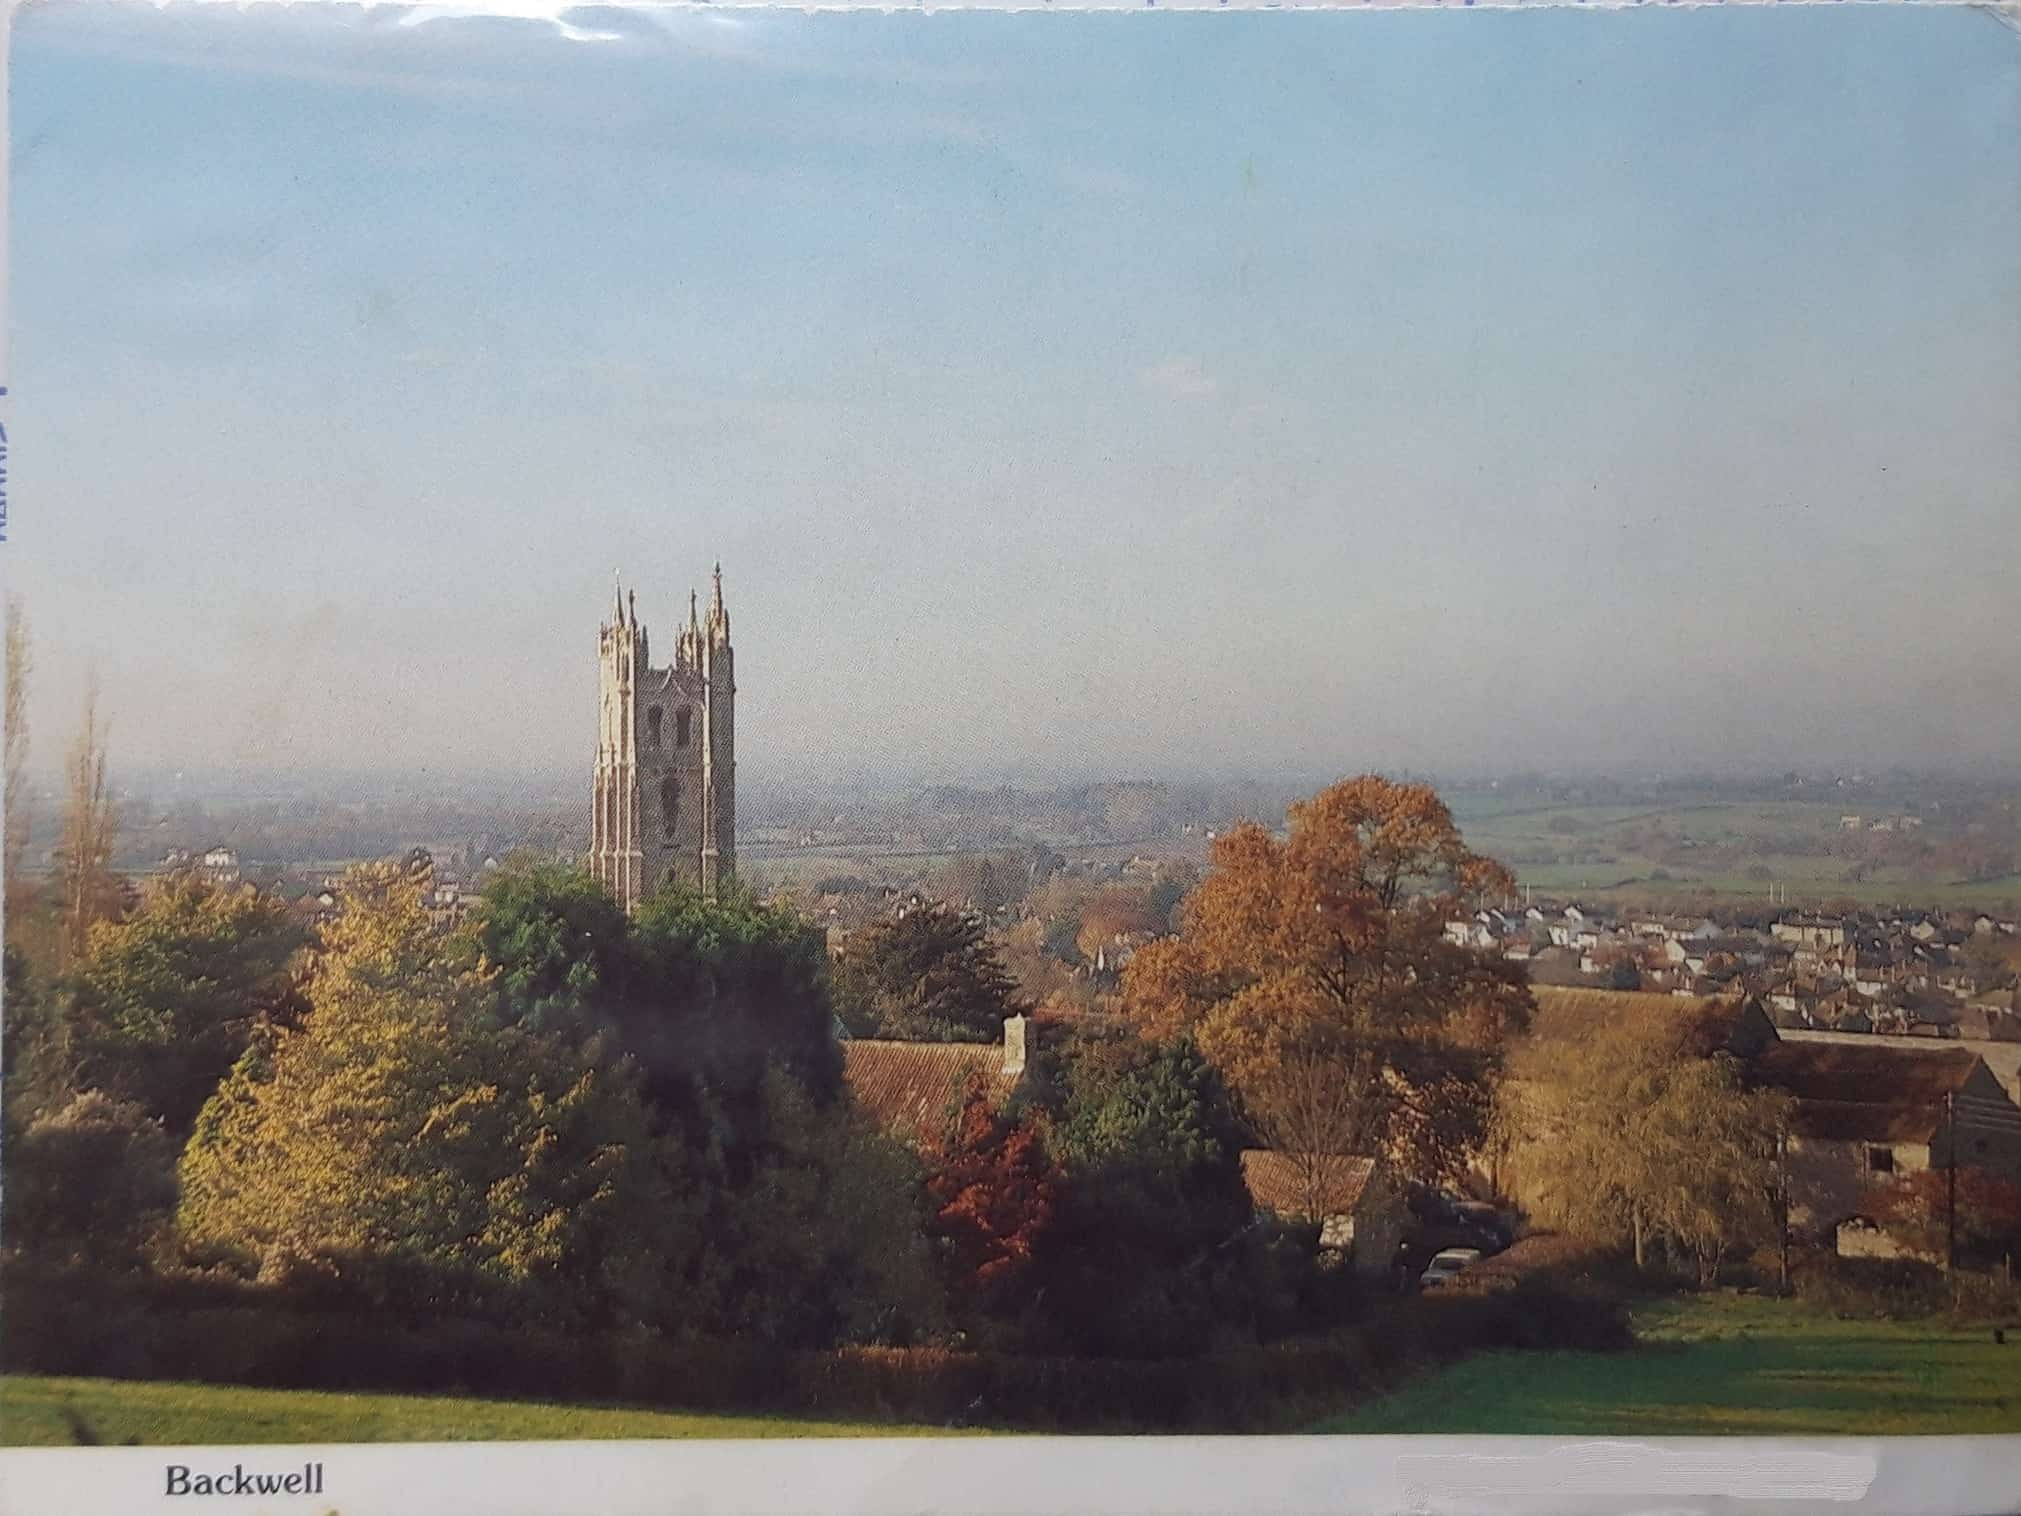 Postcard: Backwell (Source: Avon and Somerset Police)